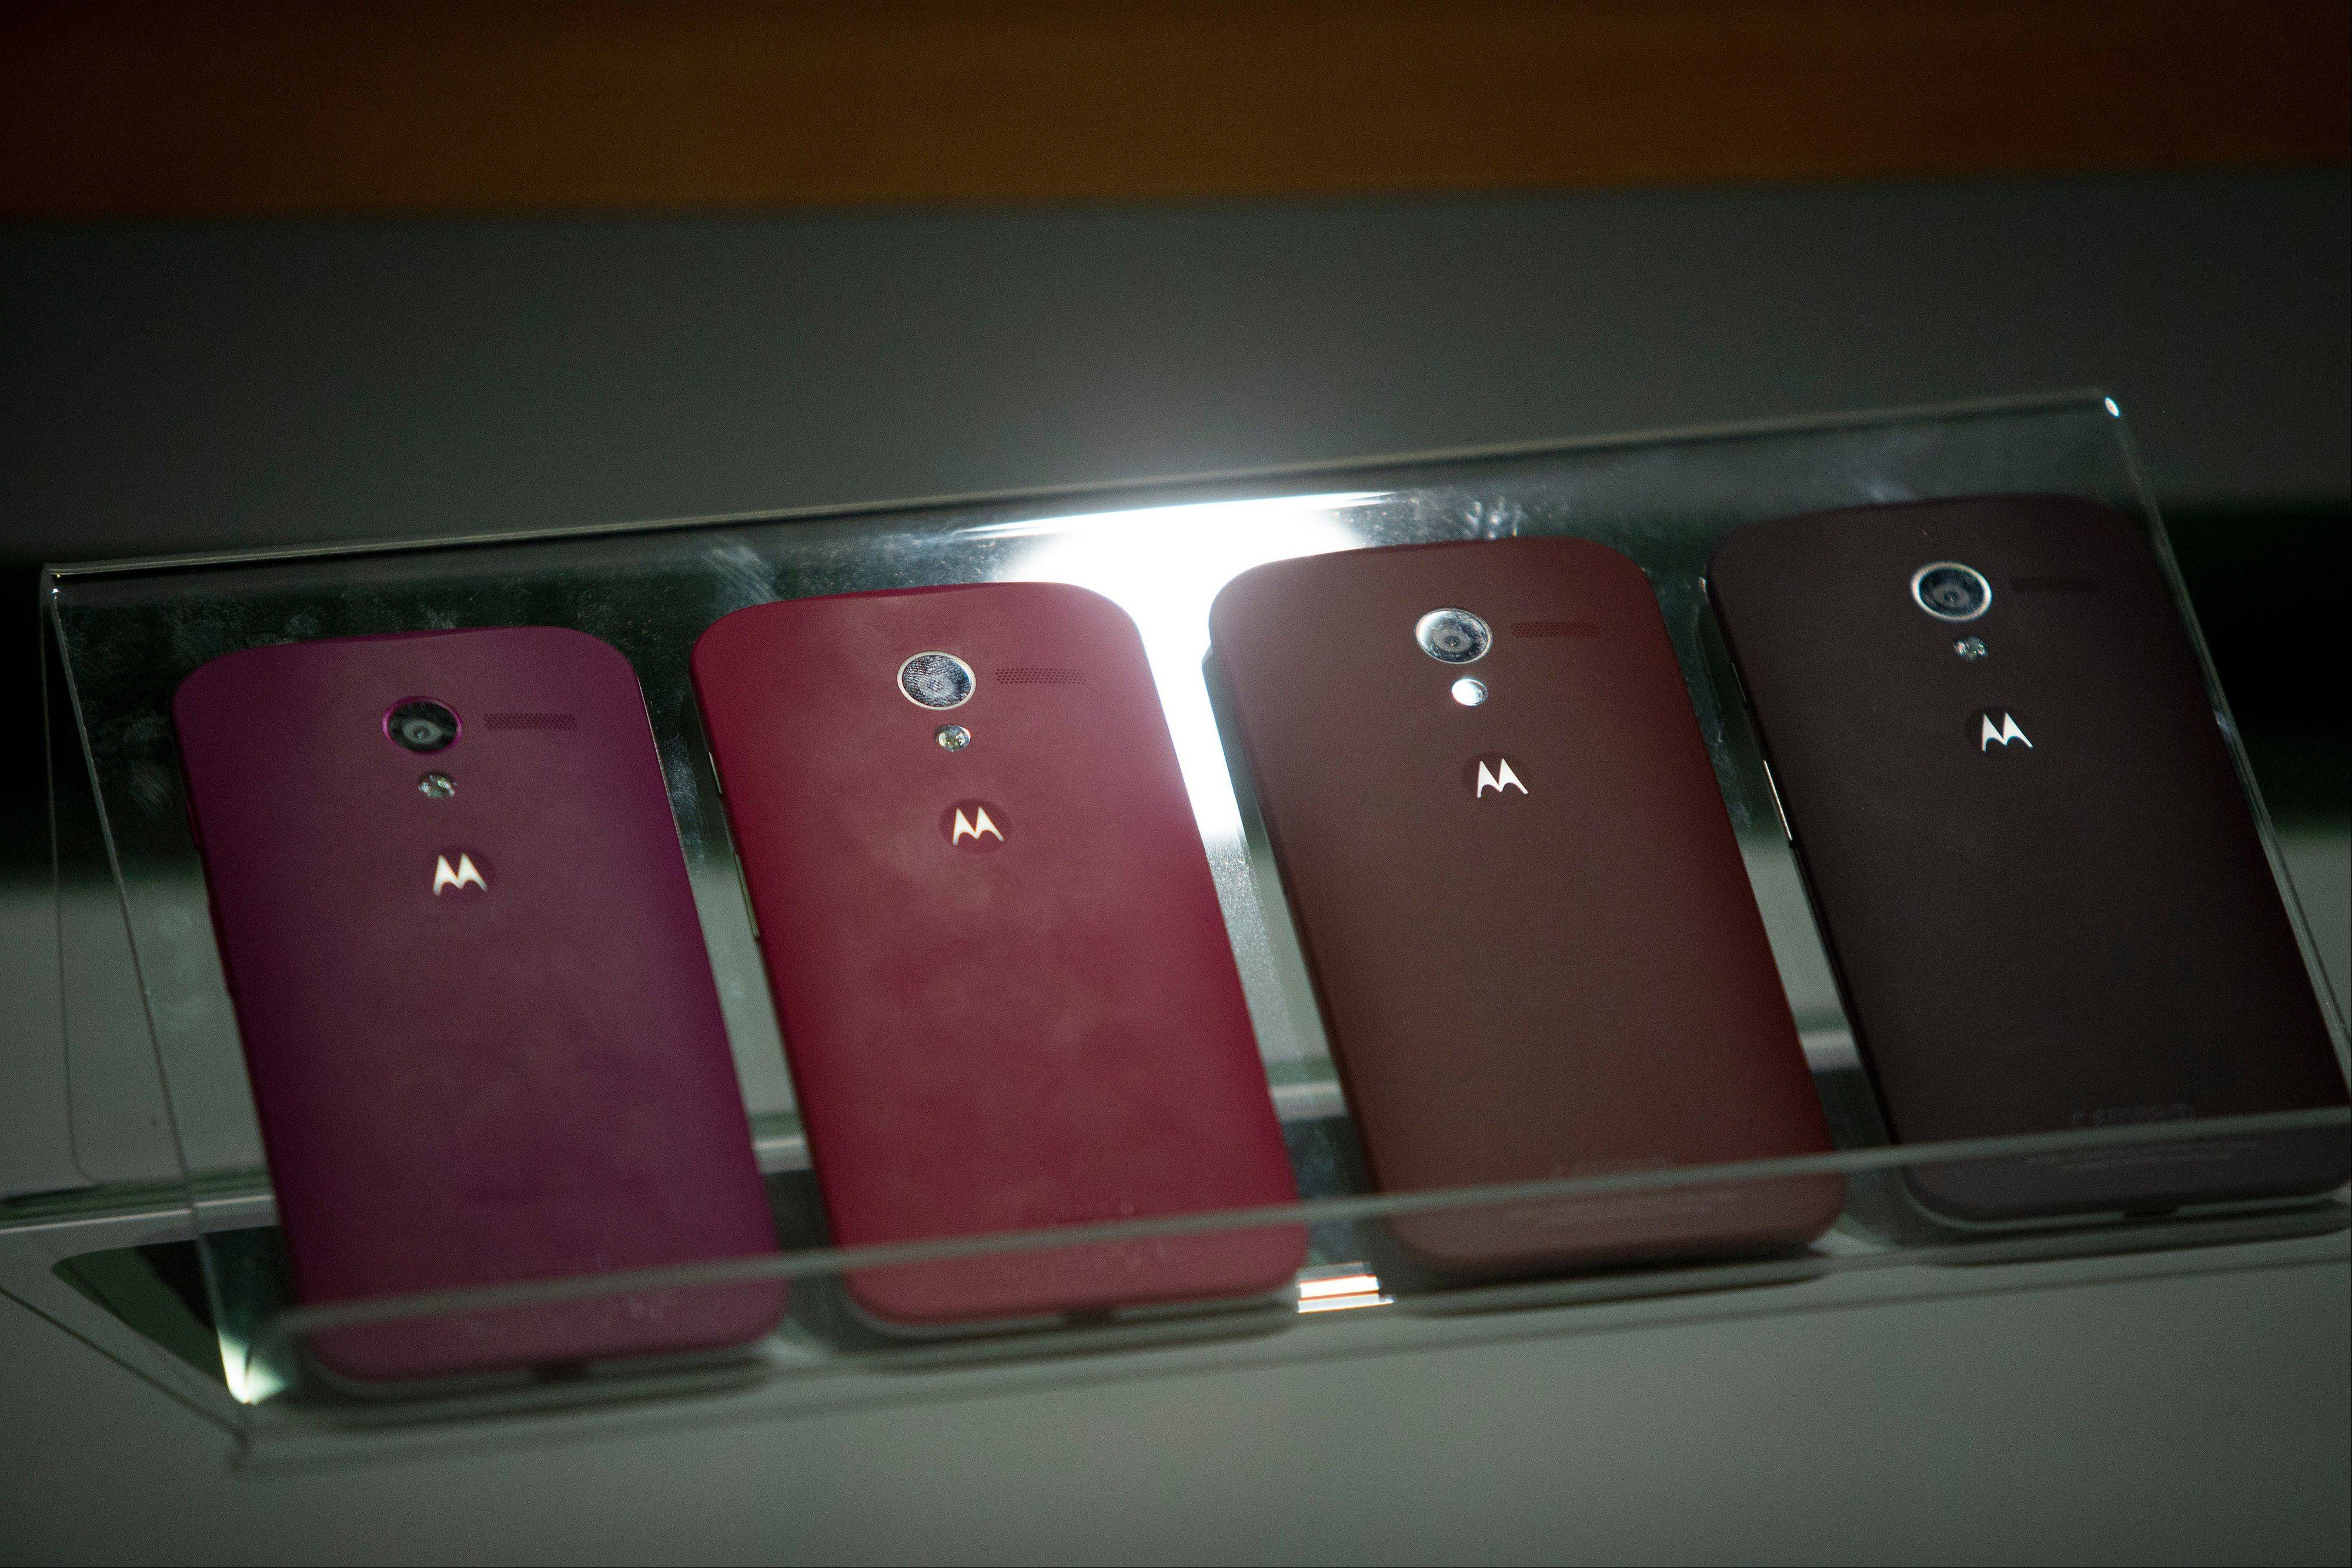 The Motorola Mobility Moto X phone is displayed during a launch event in New York, U.S., on Thursday, Aug. 1, 2013. Google Inc.'s Motorola Mobility unit today announced a flagship Moto X smartphone with customizable colors, in an effort to revive the business after falling behind Apple Inc. and Samsung Electronics Co.